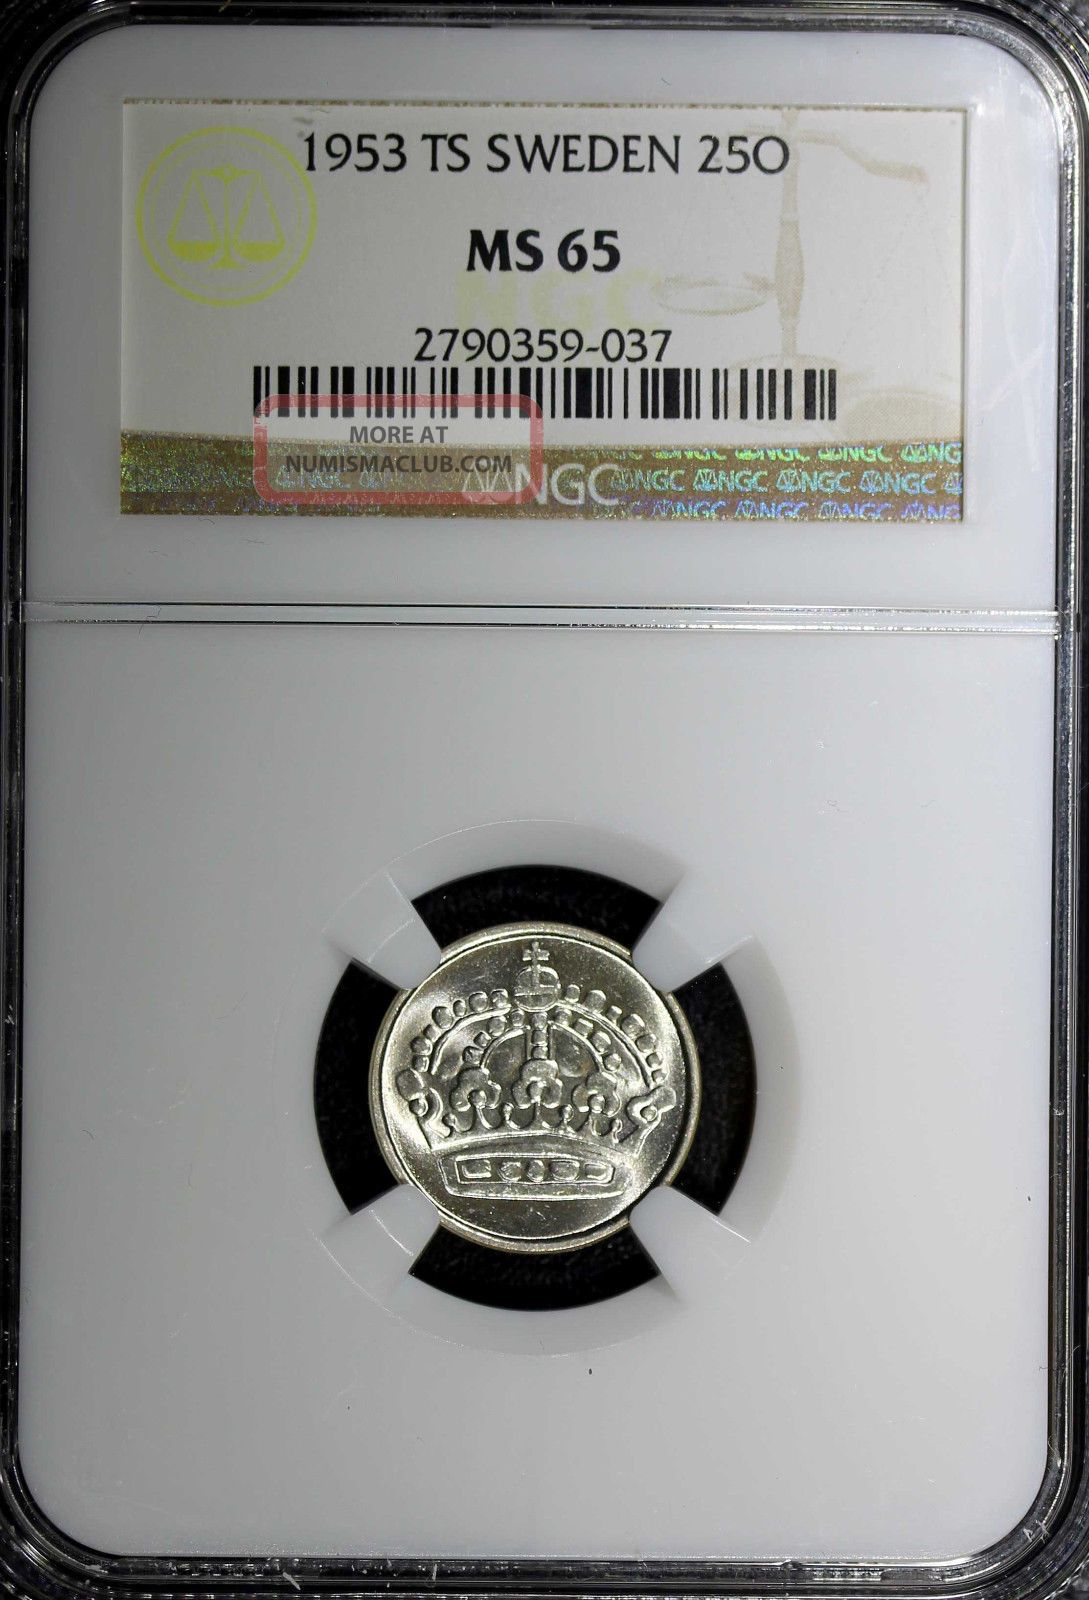 Sweden Gustaf Vi Silver 1953 Ts 25 Ore Ngc Ms65 - Top Graded Km 824 N/r Europe photo